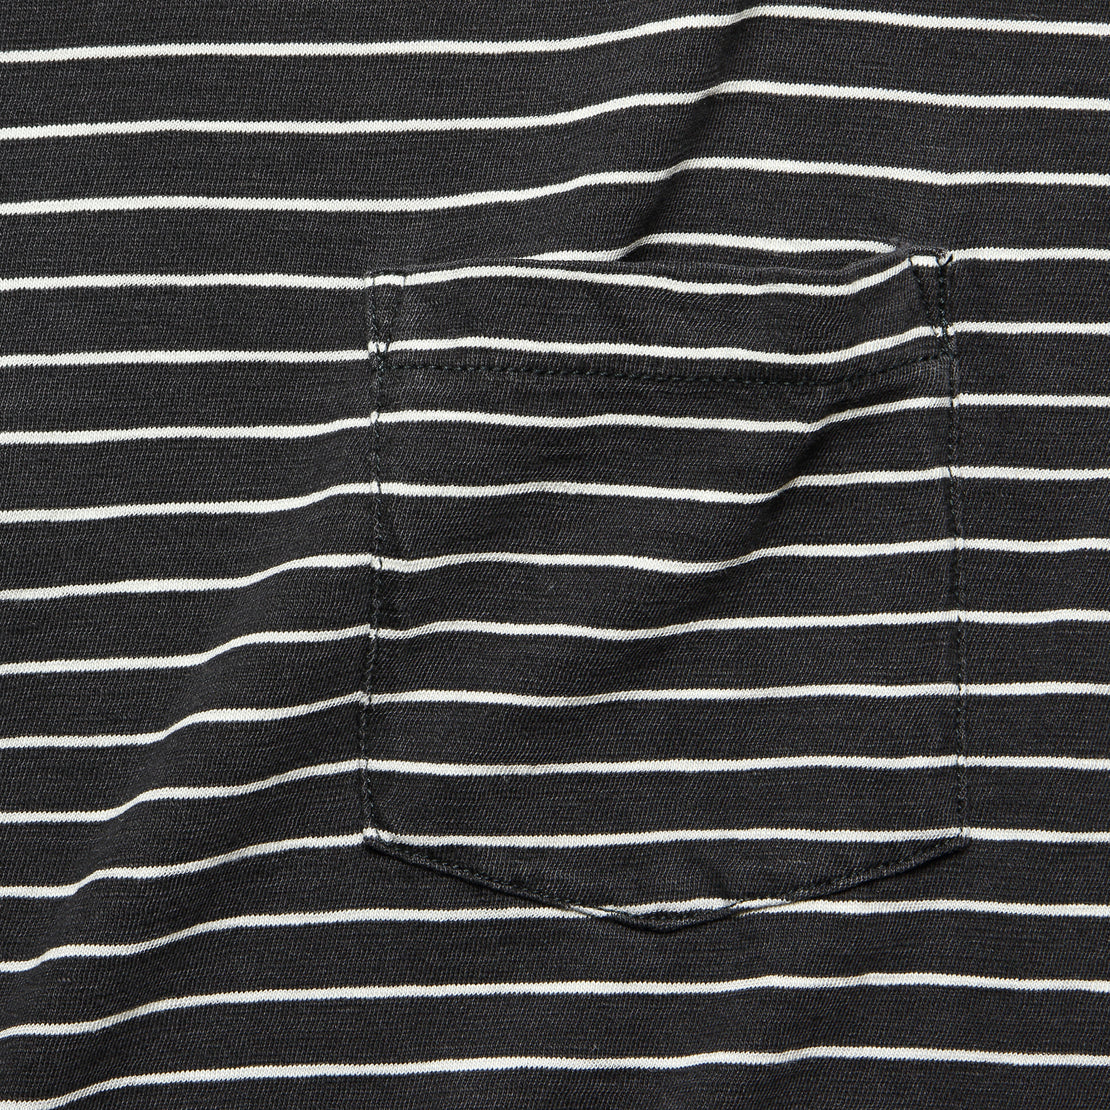 Indigo Pocket Tee - Black/White